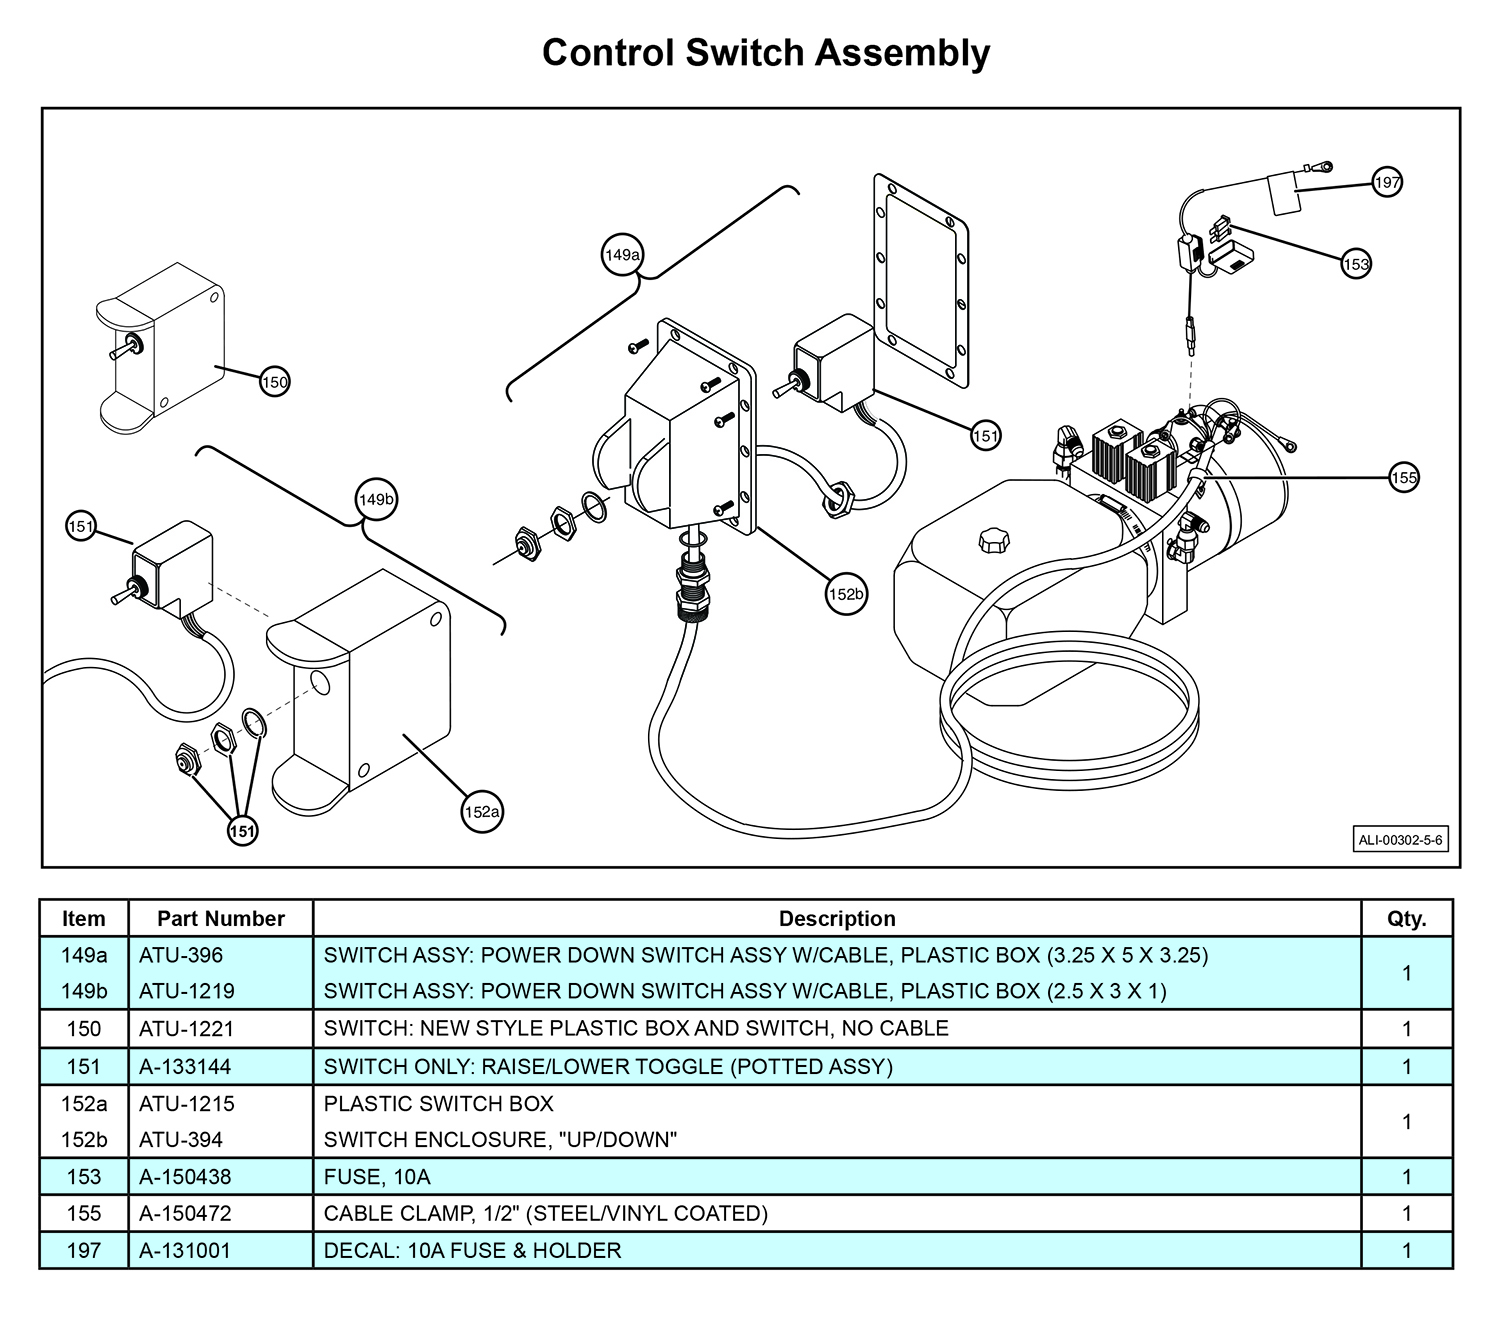 MTU-GLR-5-6 Control Switch Assembly Diagram